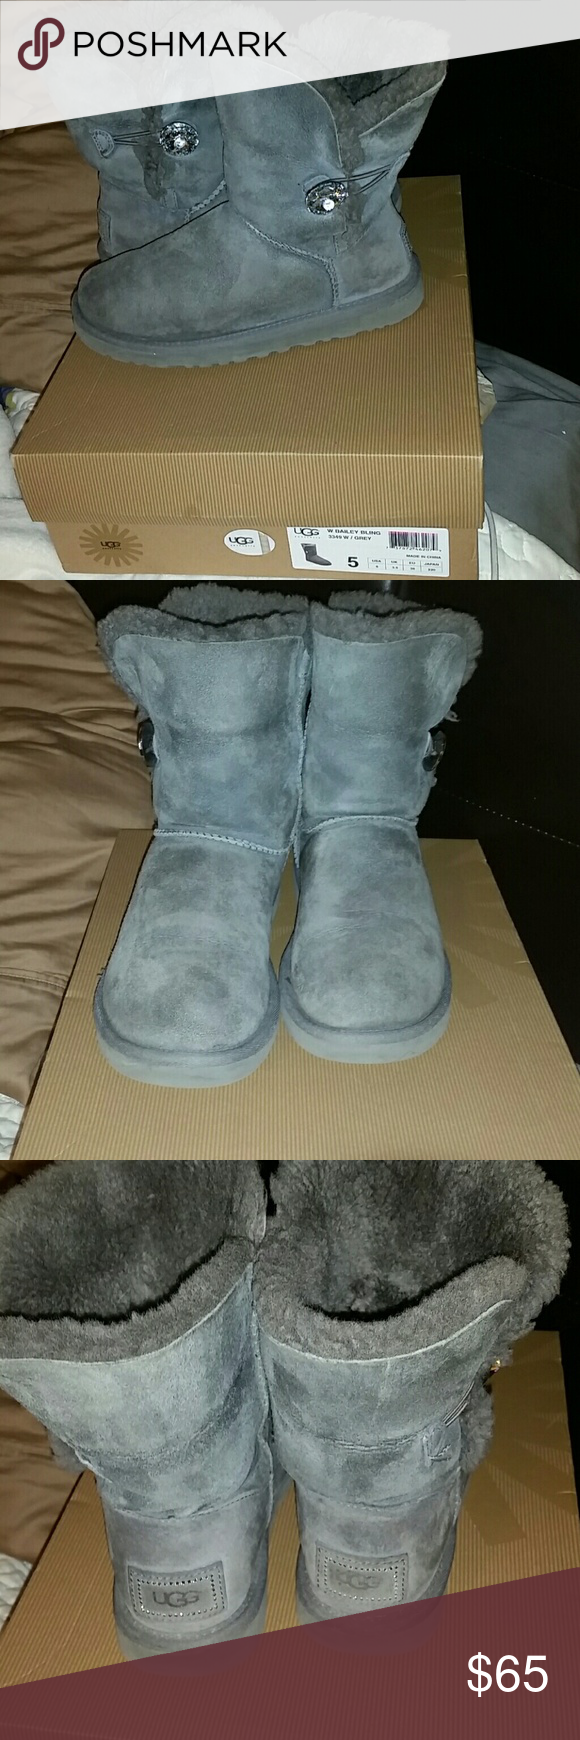 Ugg bailey Bling Ugg bailey Bling grey one button  Excellent  used condition.  Comes packed in orgional box  I bought and they are too small UGG Shoes Winter & Rain Boots